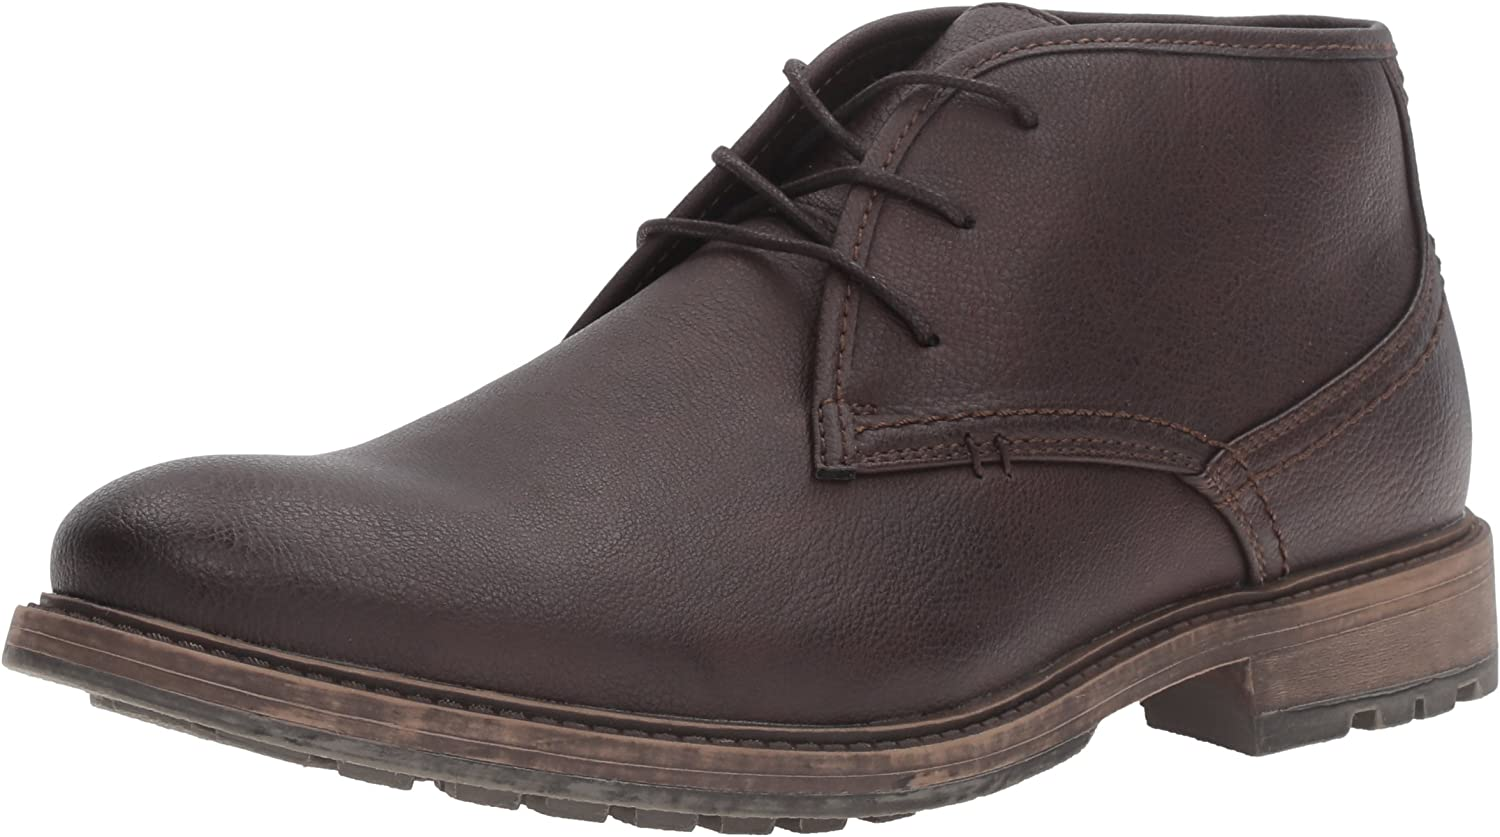 Kenneth Cole New York Mens On The Subject Chukka Boot